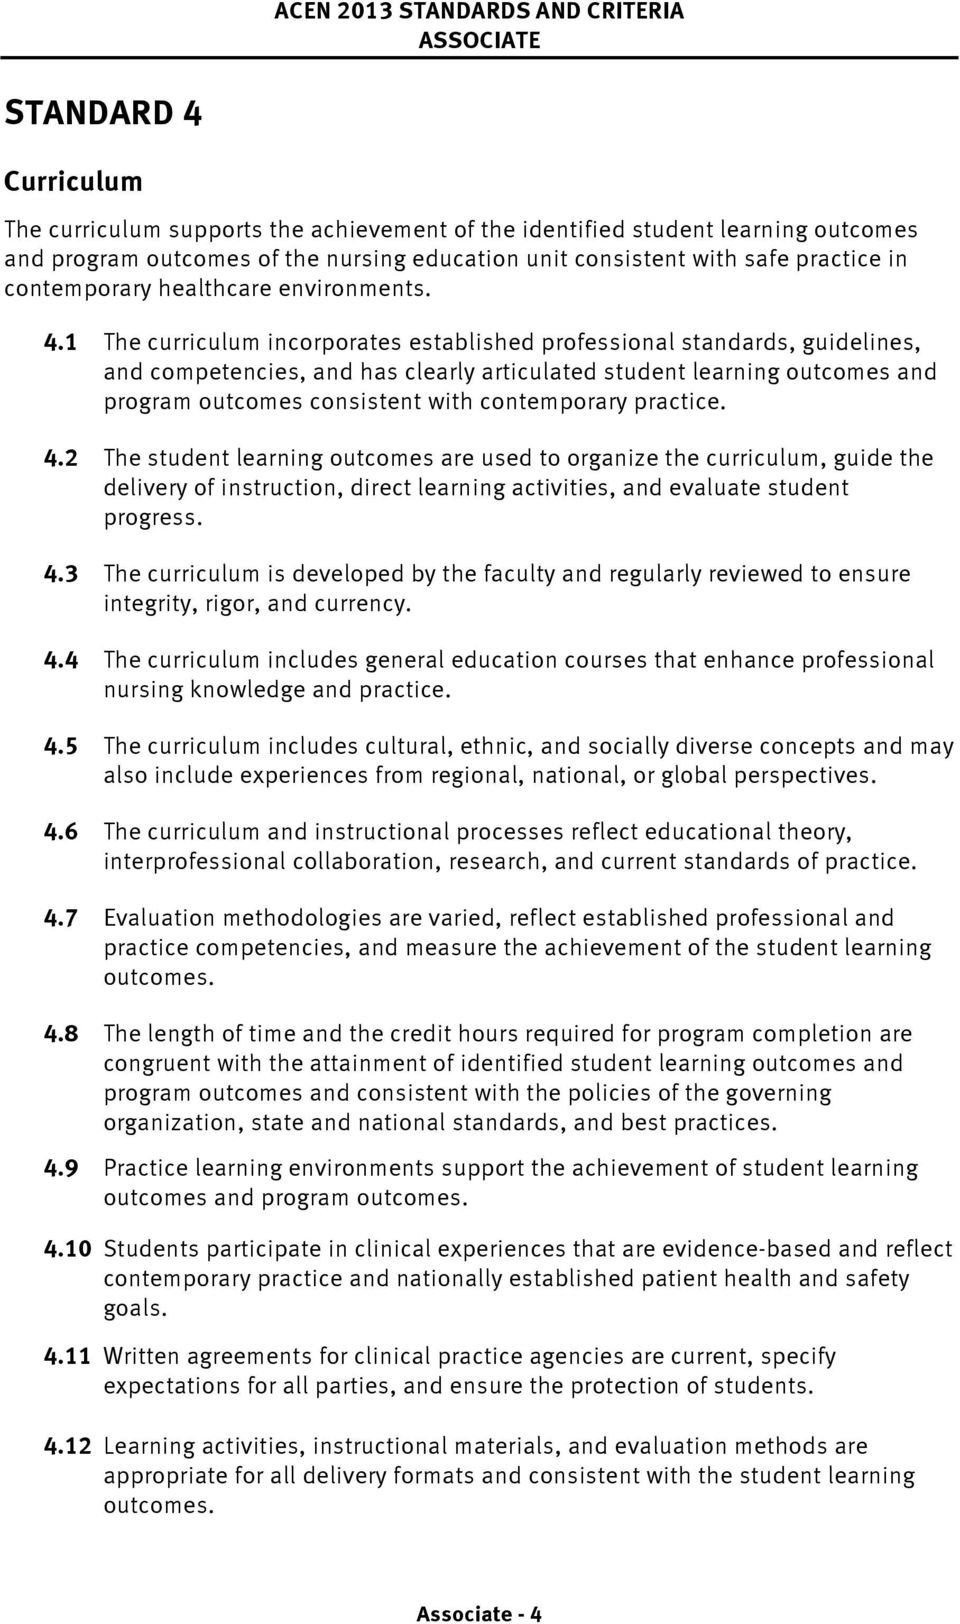 1 The curriculum incorporates established professional standards, guidelines, and competencies, and has clearly articulated student learning outcomes and program outcomes consistent with contemporary